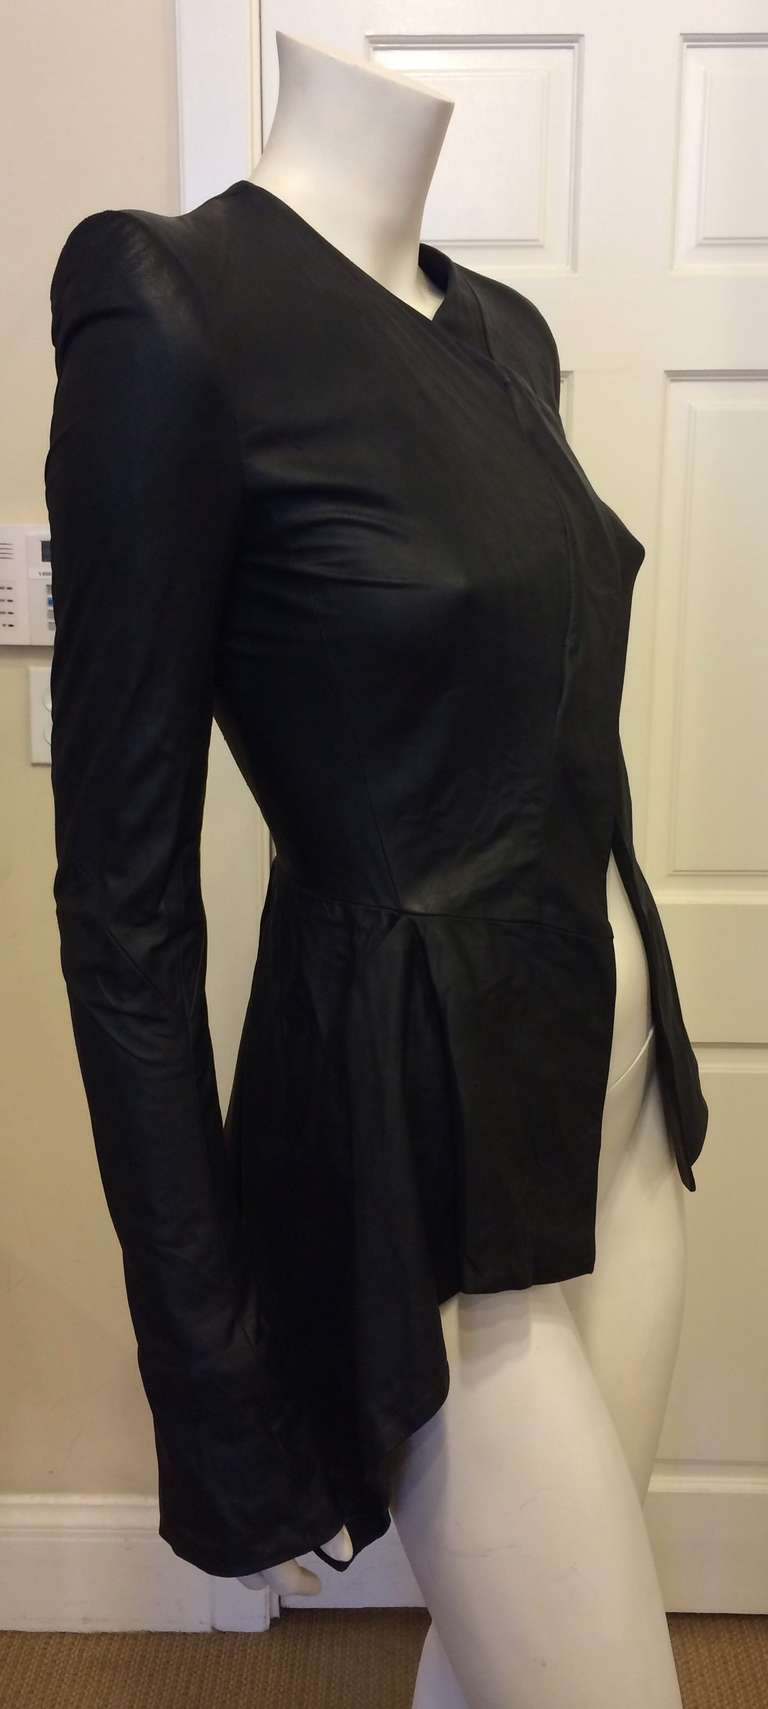 Gareth Pugh Black Leather Jacket In Excellent Condition For Sale In San Francisco, CA